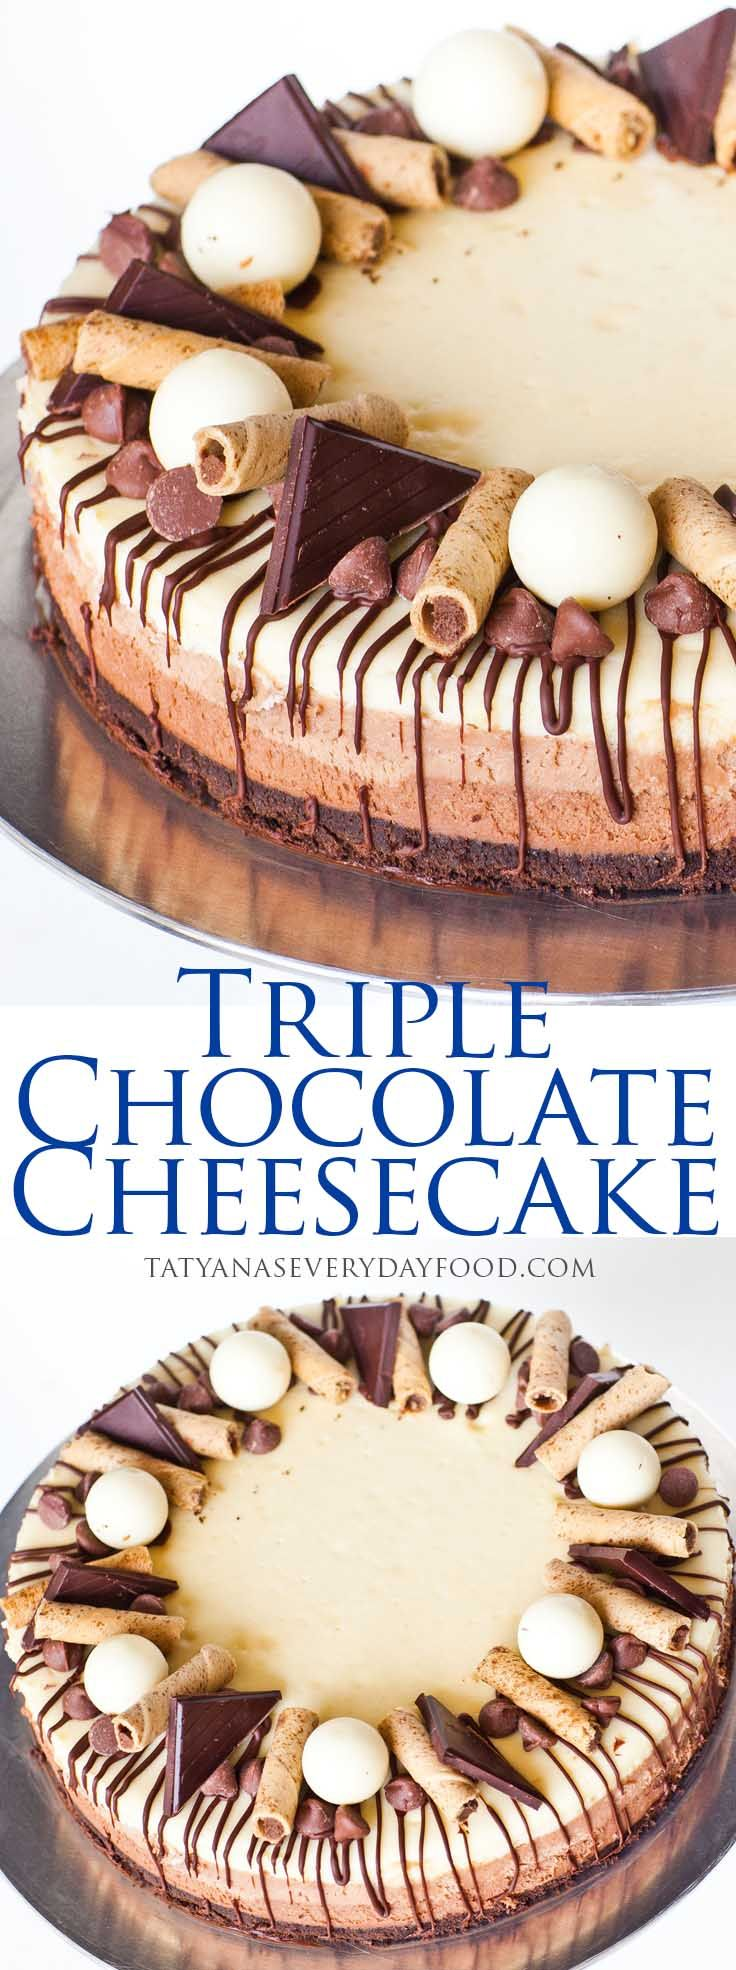 Chocolate and cheesecake are a match made in heaven! This triple chocolate cheesecake is any chocolate lover's dream, made with three chocolate layers of melt-in-your-mouth goodness! This is one to try! Watch my video recipe for all the details! Plus, I'm showing how to use a water bath in my video recipe so you can get […]